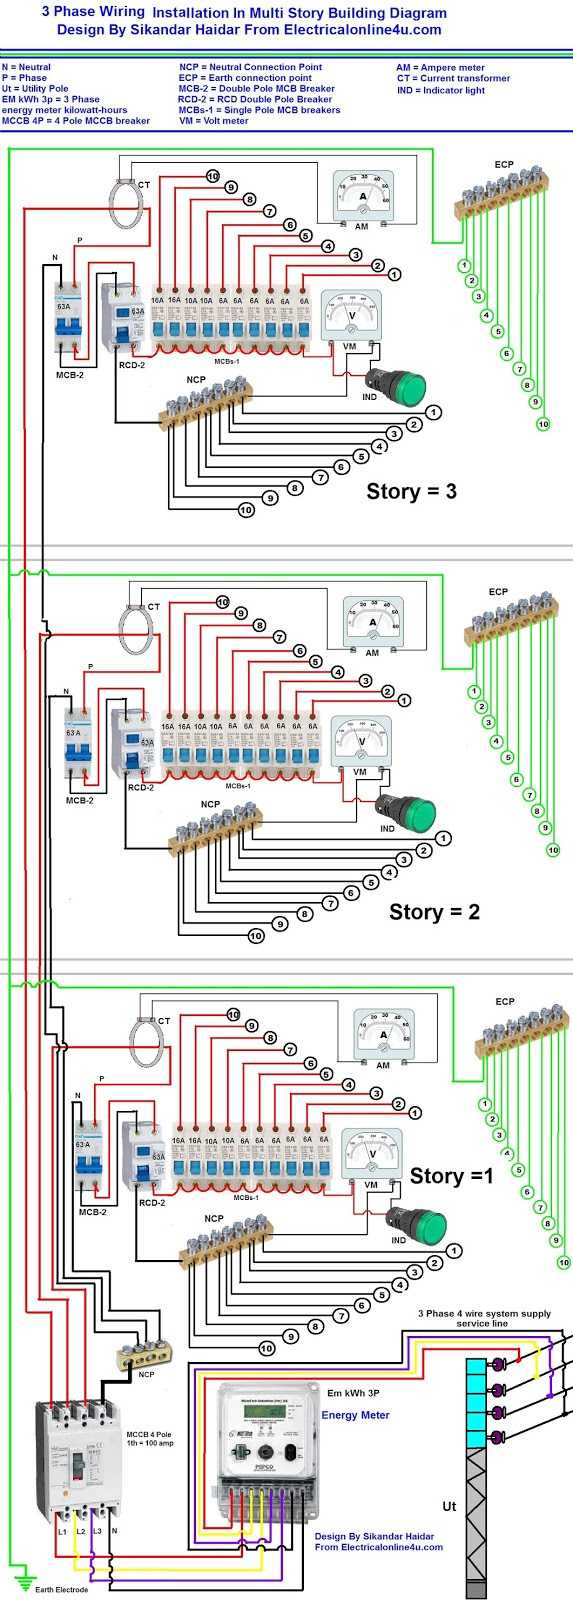 Home Wiring Hindi Block And Schematic Diagrams New House Tips 3 Phase Distribution Board Diagram For Multi Story Building Rh Electricaltutorials Org Basics In